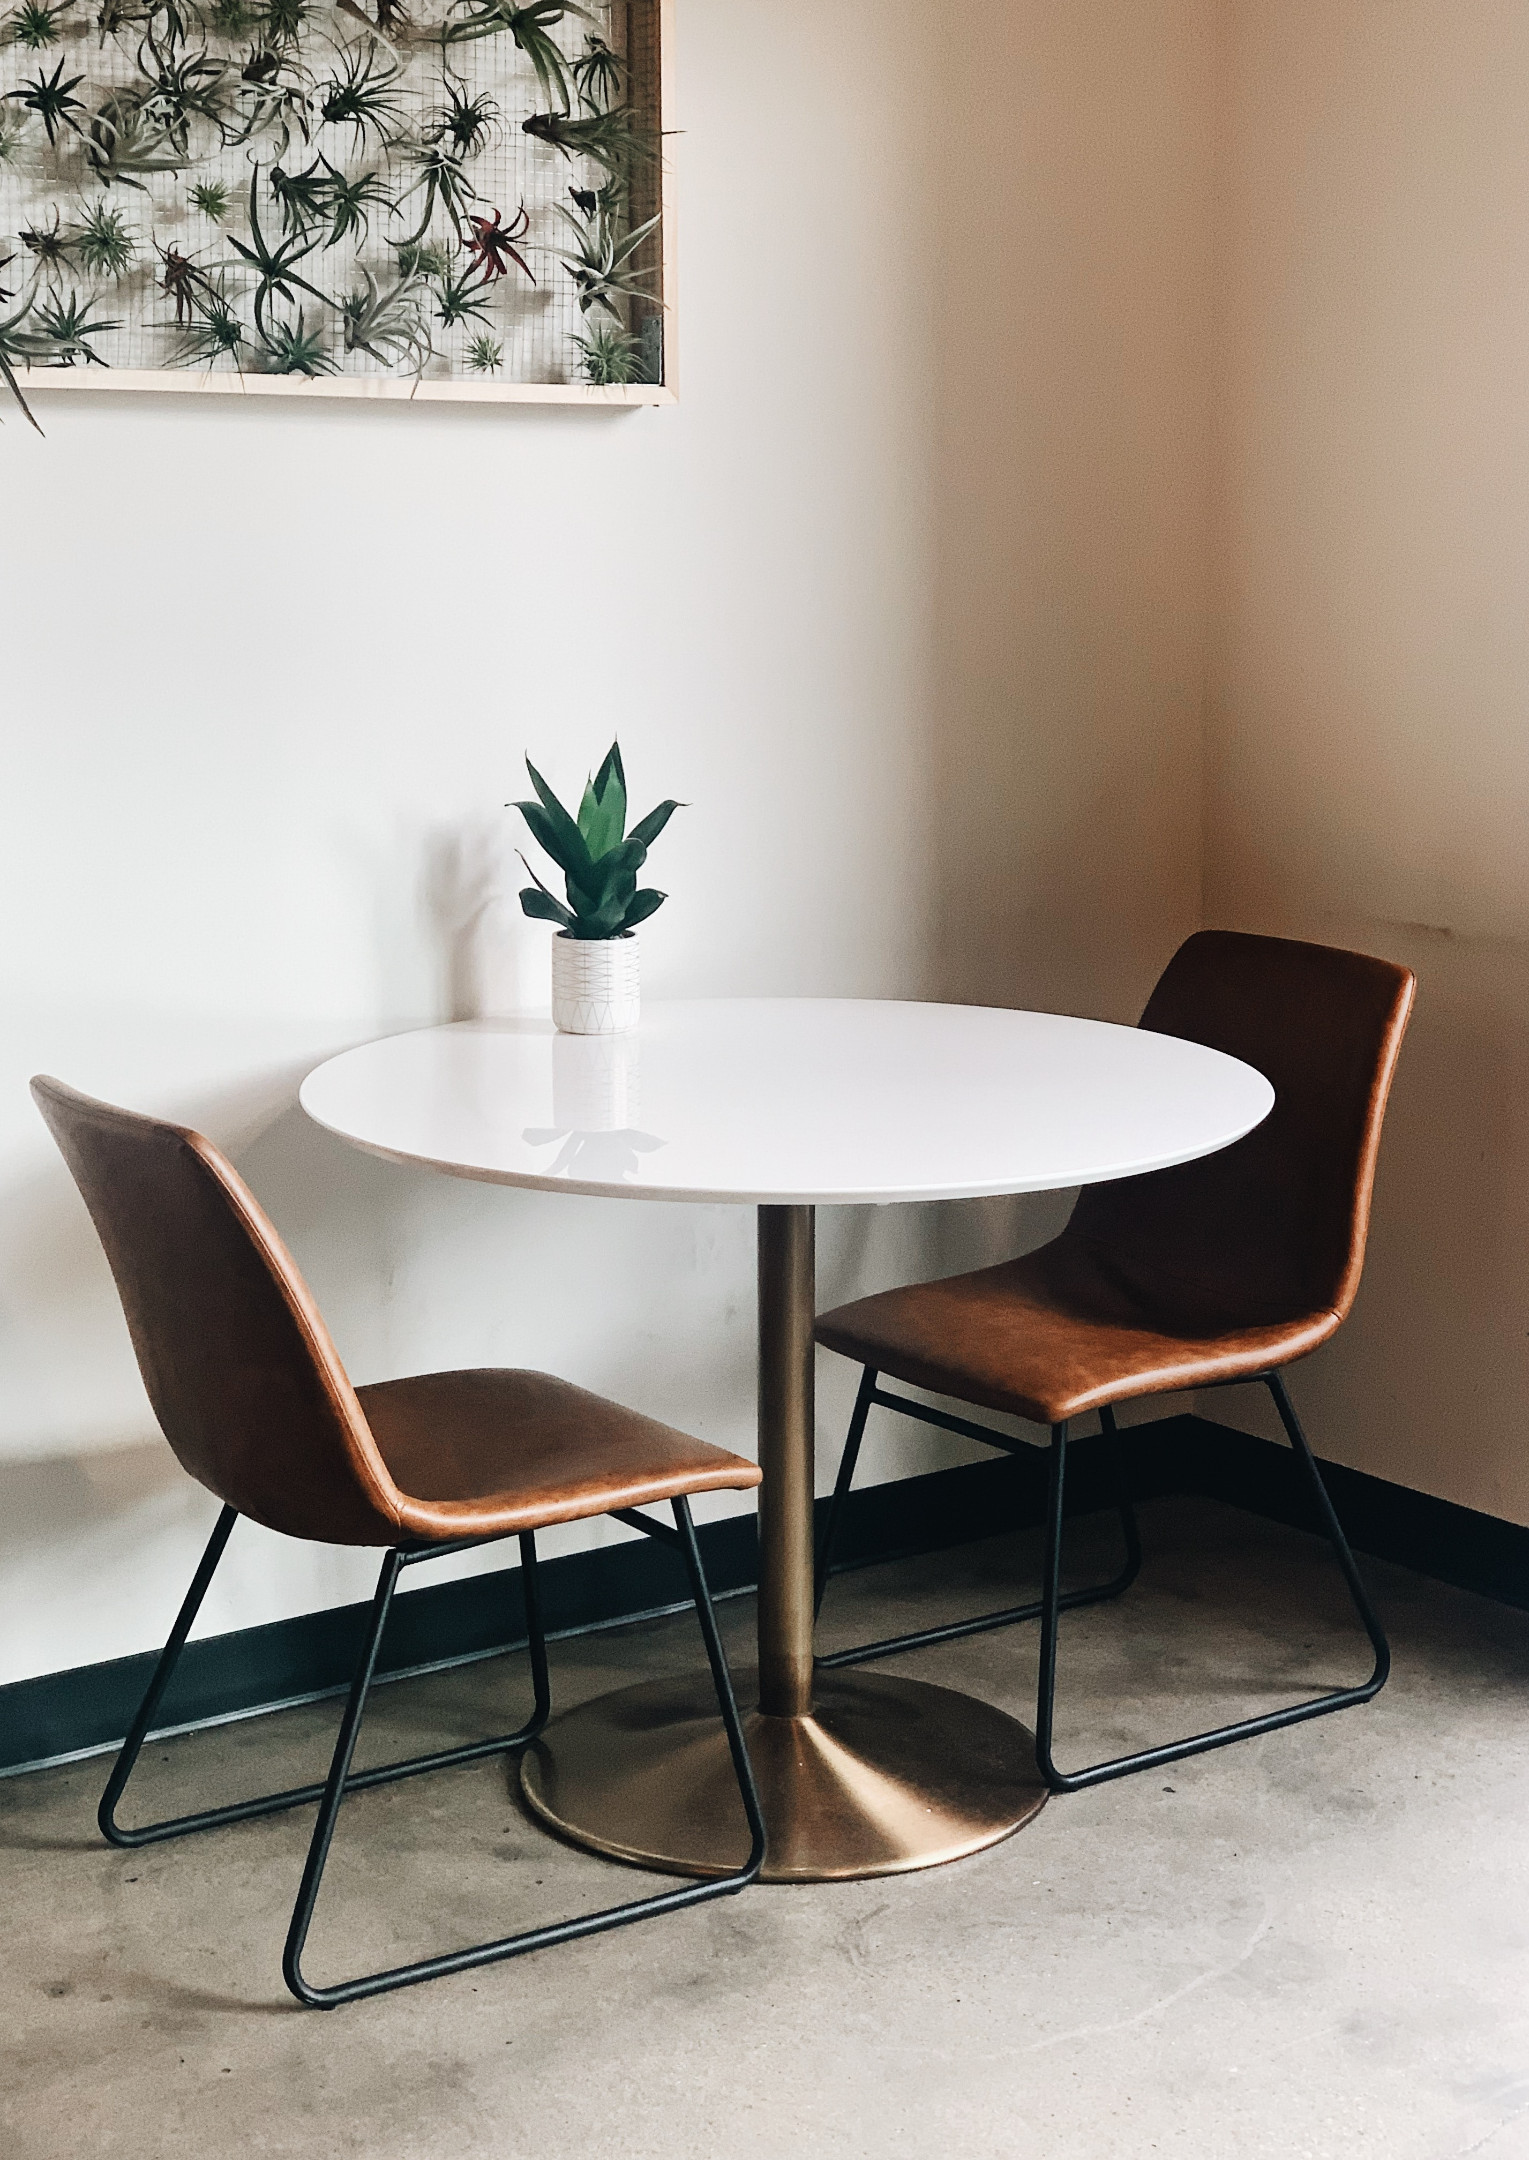 Two brown backed leather chairs with a black frame and legs around a white table with a decorative green succulent plant in a white vase.